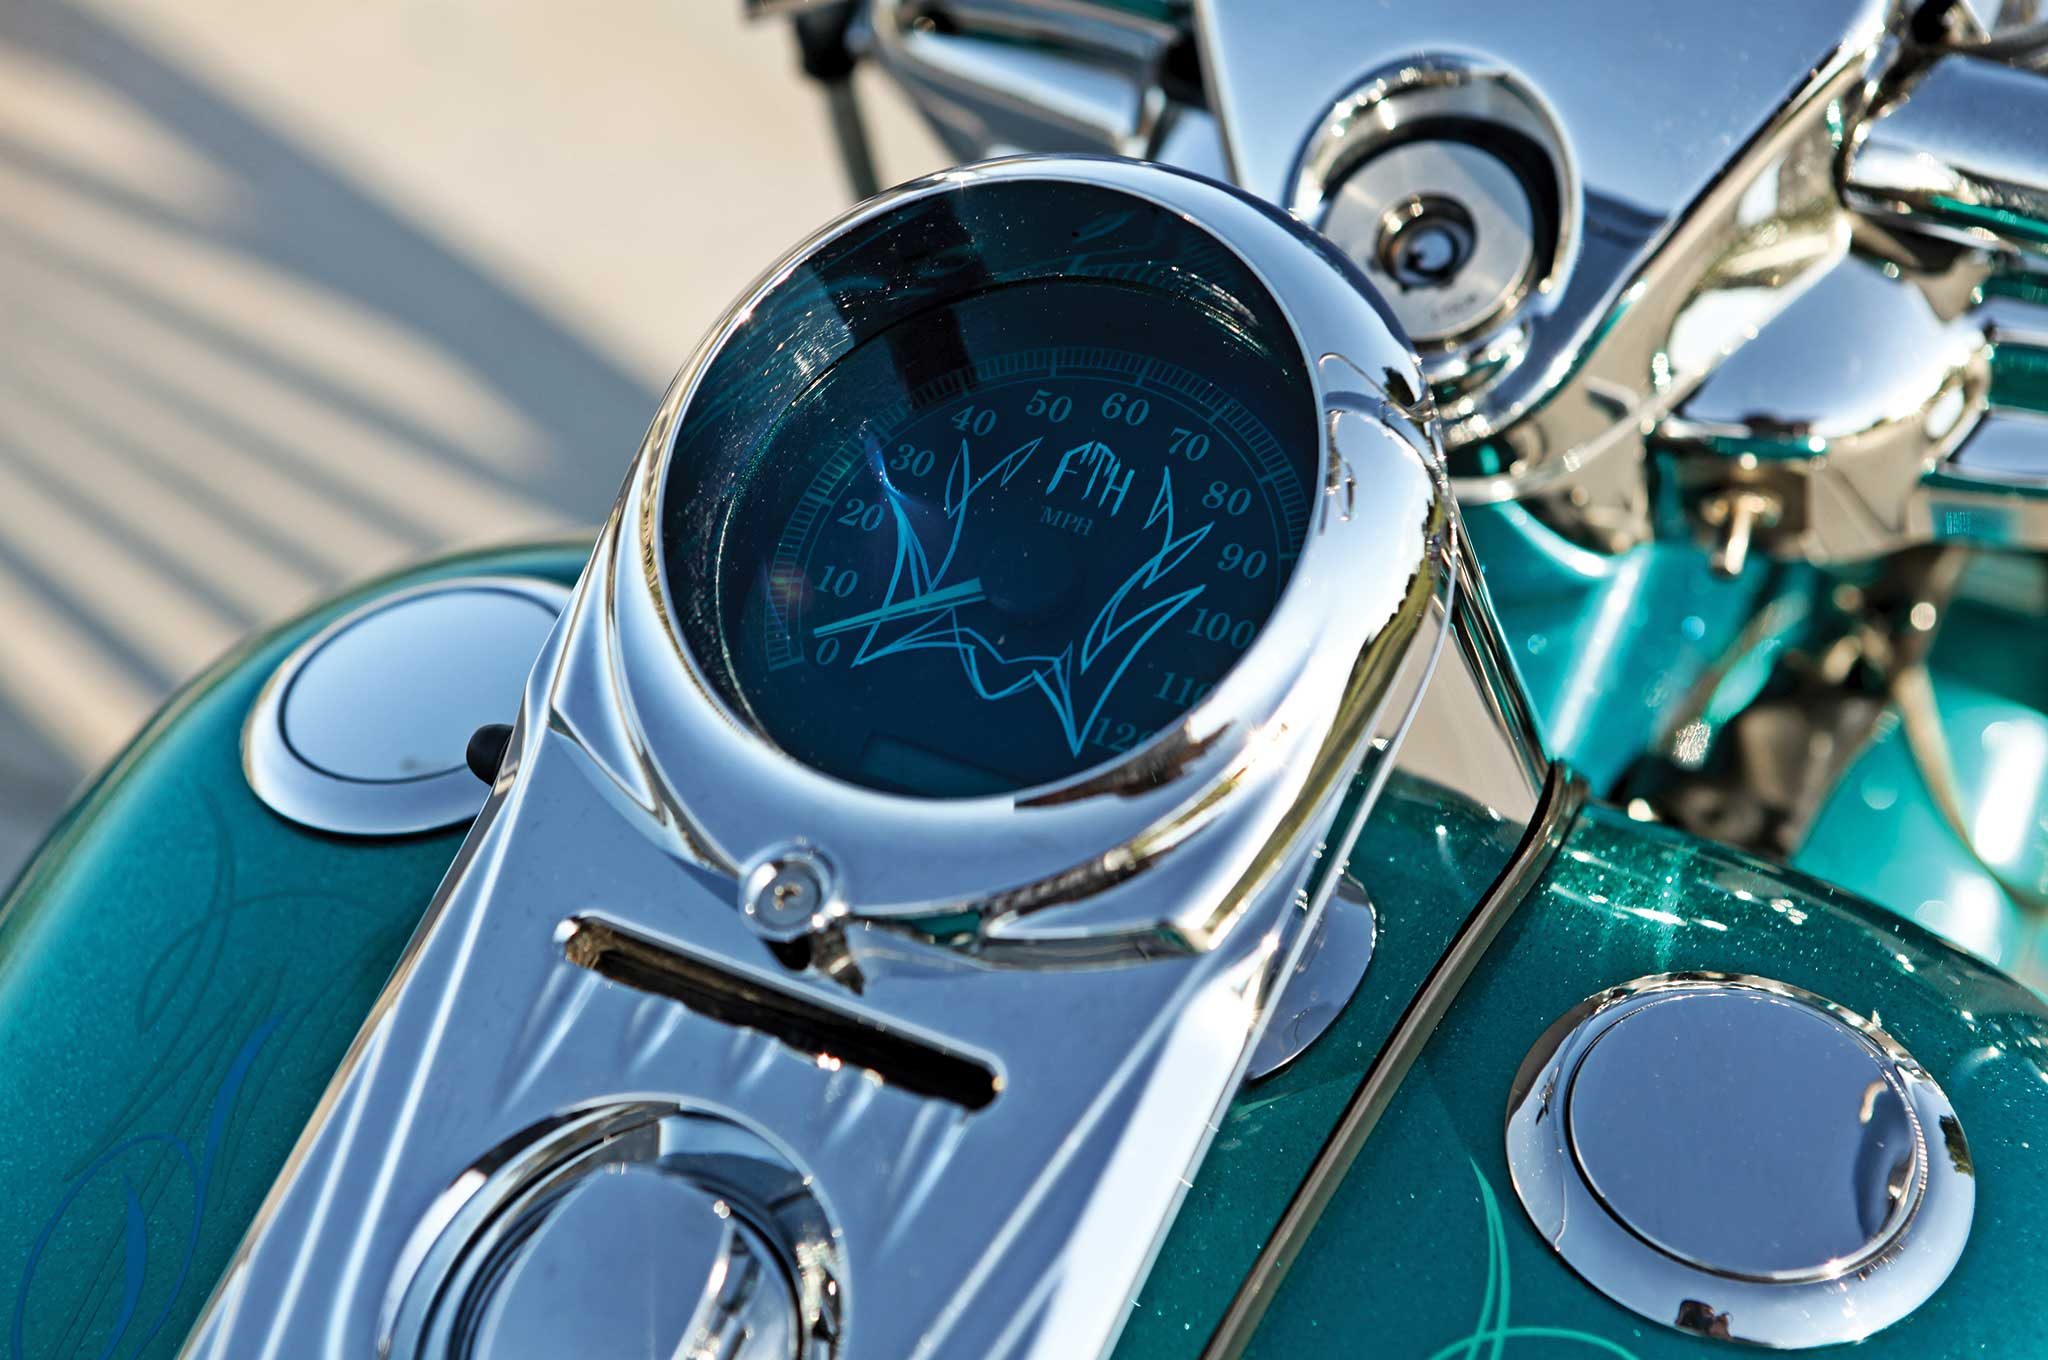 Harley Davidson Road King Speedometer additionally Chevrolet Impala Ss Dashboard in addition Chevy Bel Air Dash together with Chevrolet Truck Gauges together with B Cb F F B. on 1957 chevrolet bel air